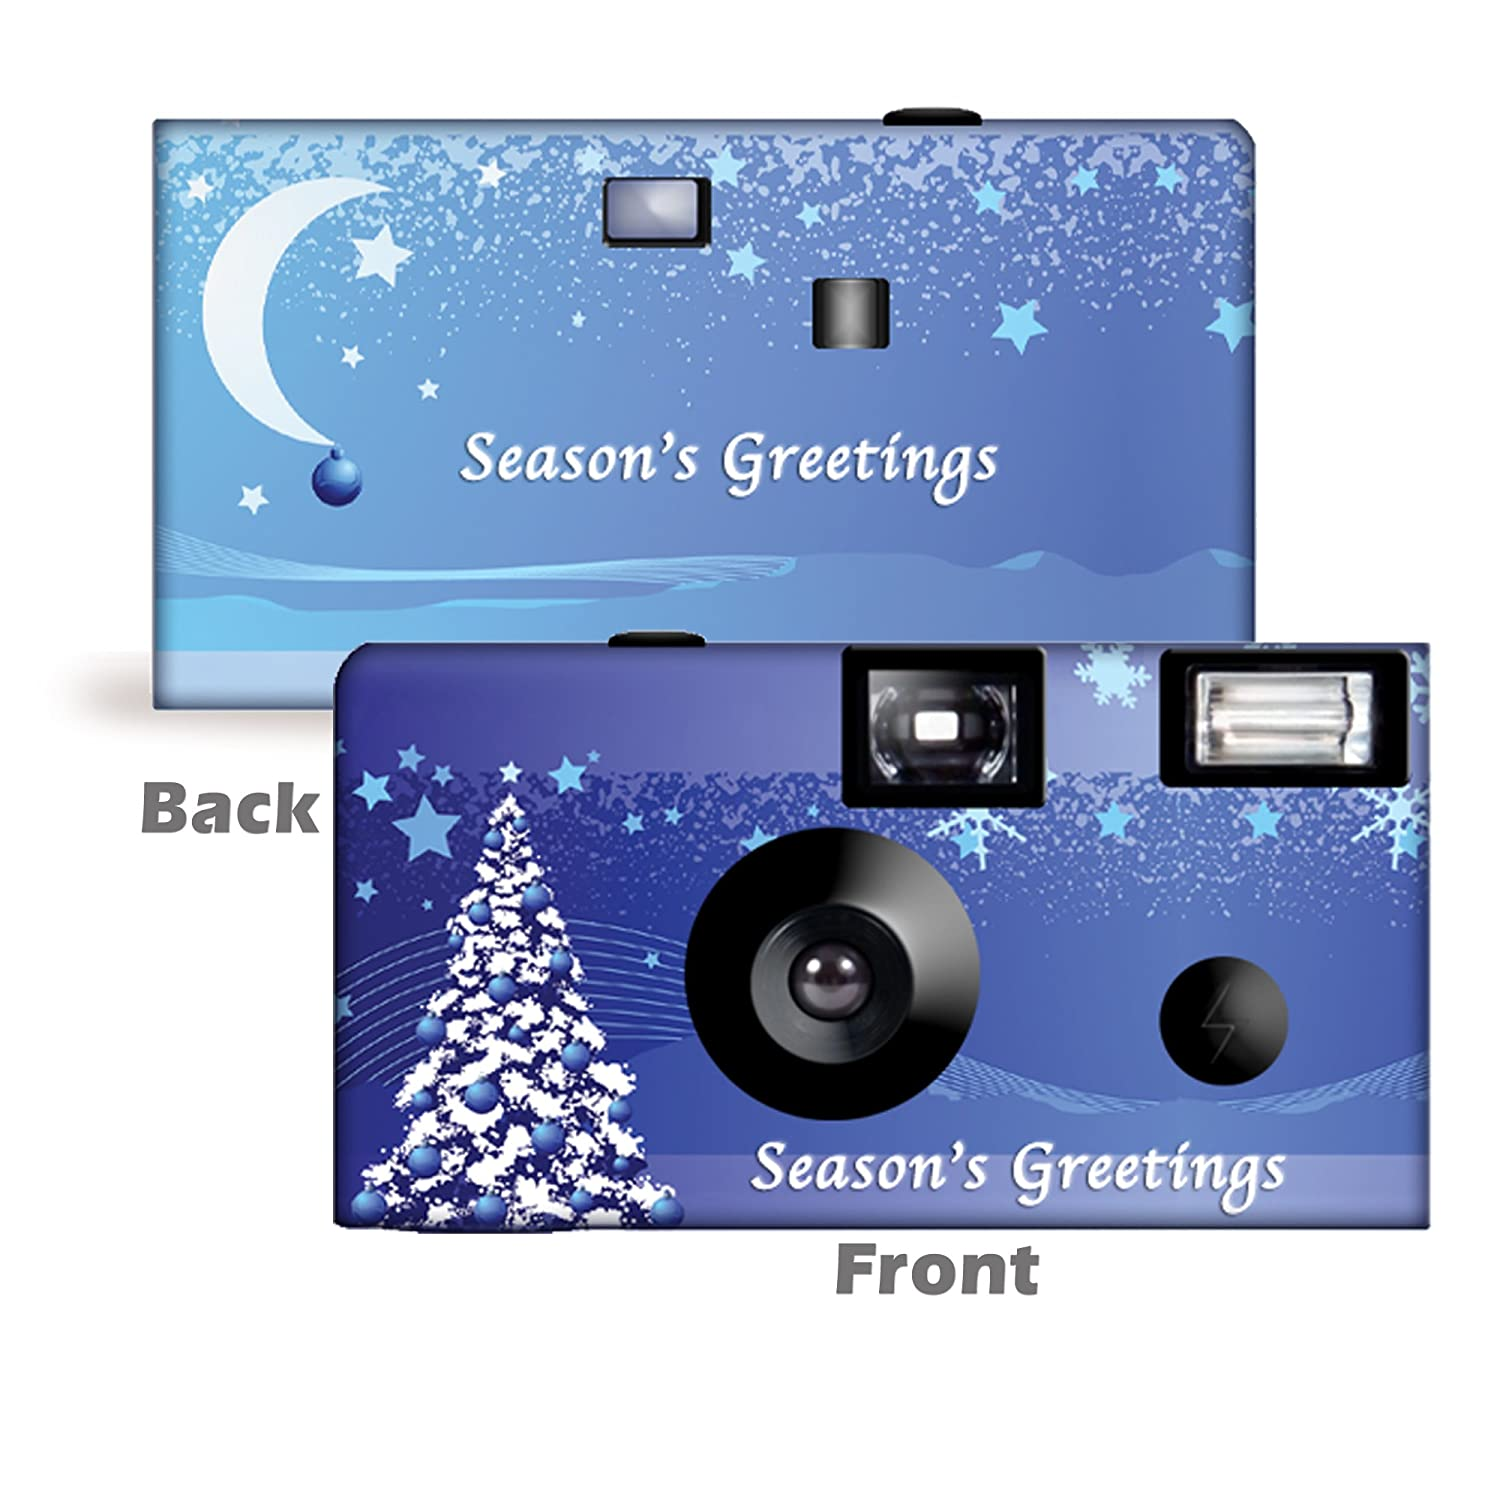 Fotodiox Diy Lomo Camera Twin Lens Reflex Tlr Kit 5 Pack Christmas In Blue Disposable Party Holiday Hot Sale 2017